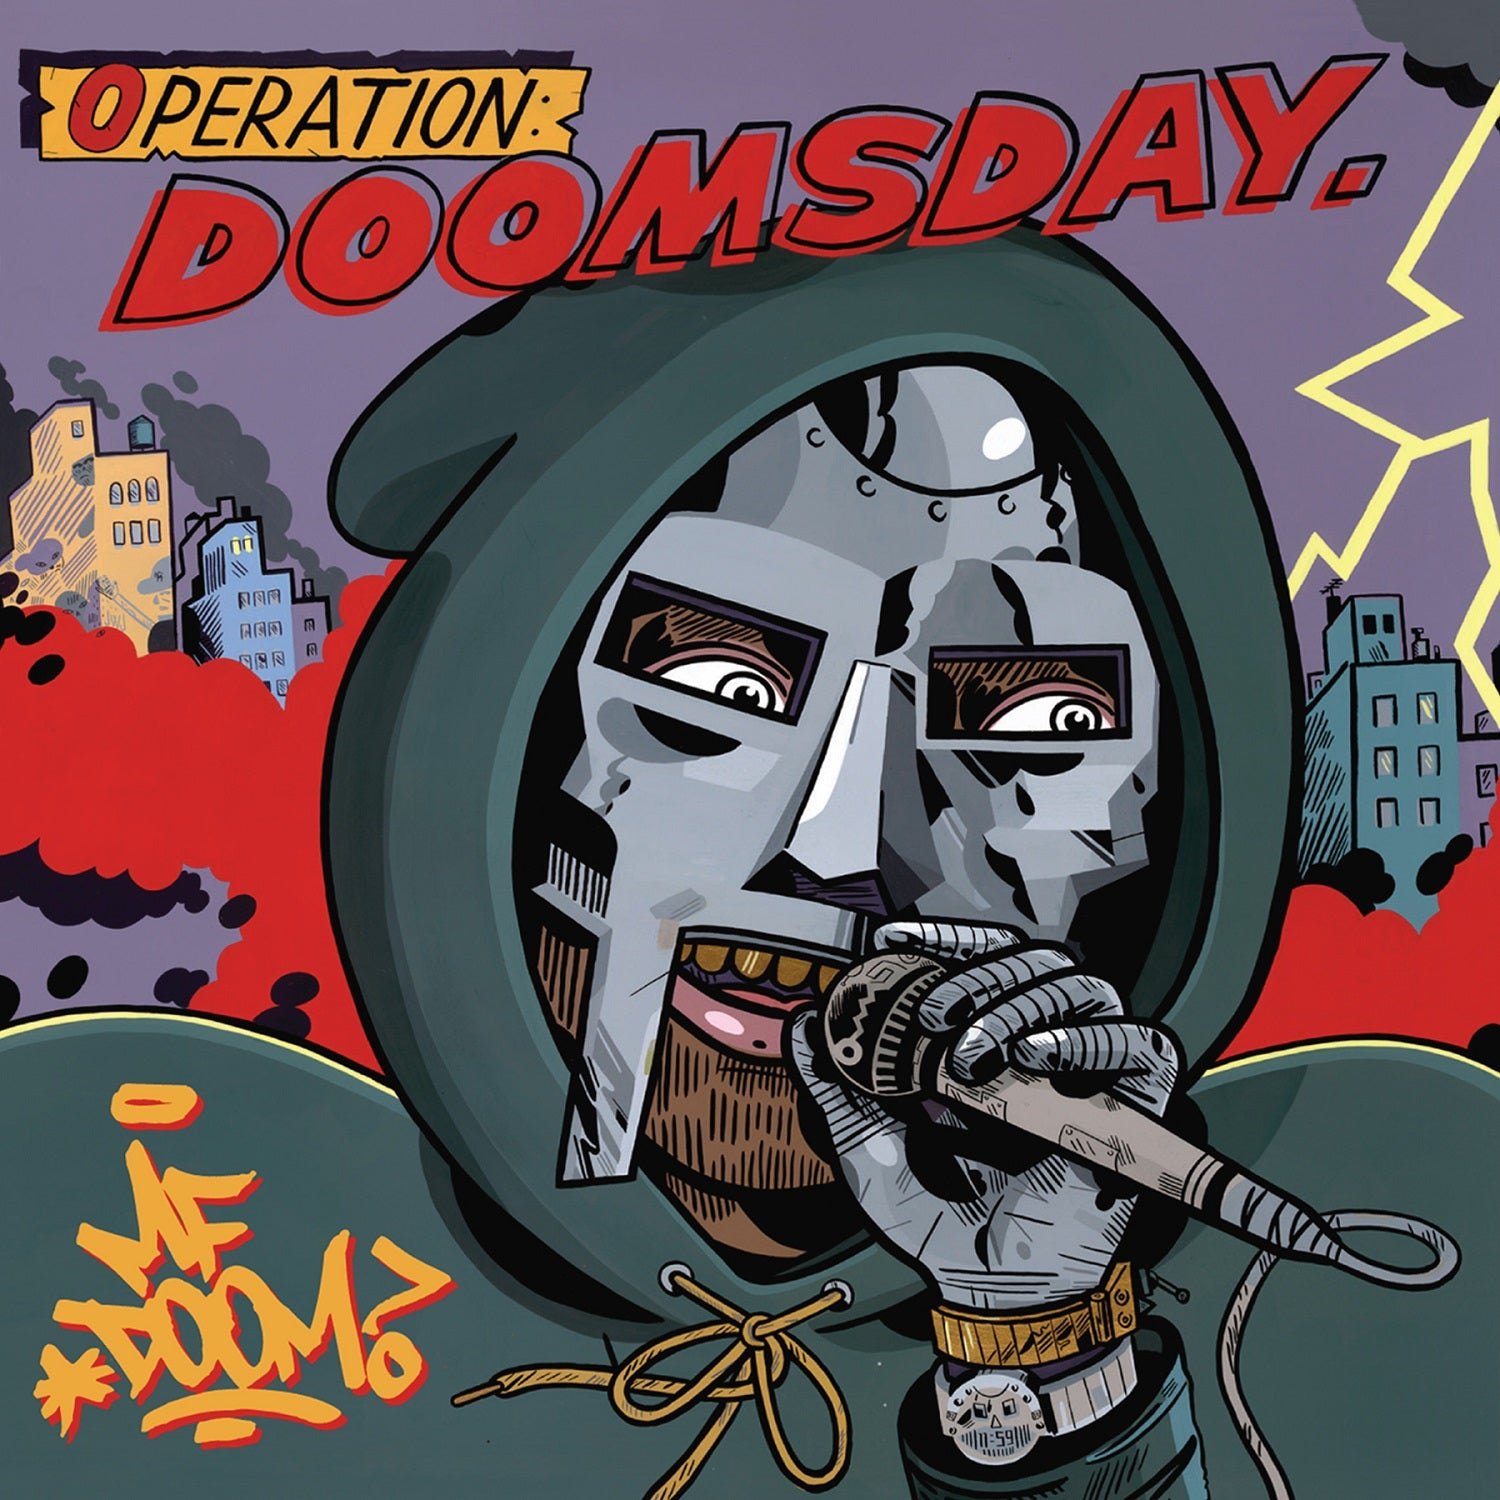 MF Doom - Operation: Doomsday (Alternative MC Sleeve) 2LP Vinyl Record Album